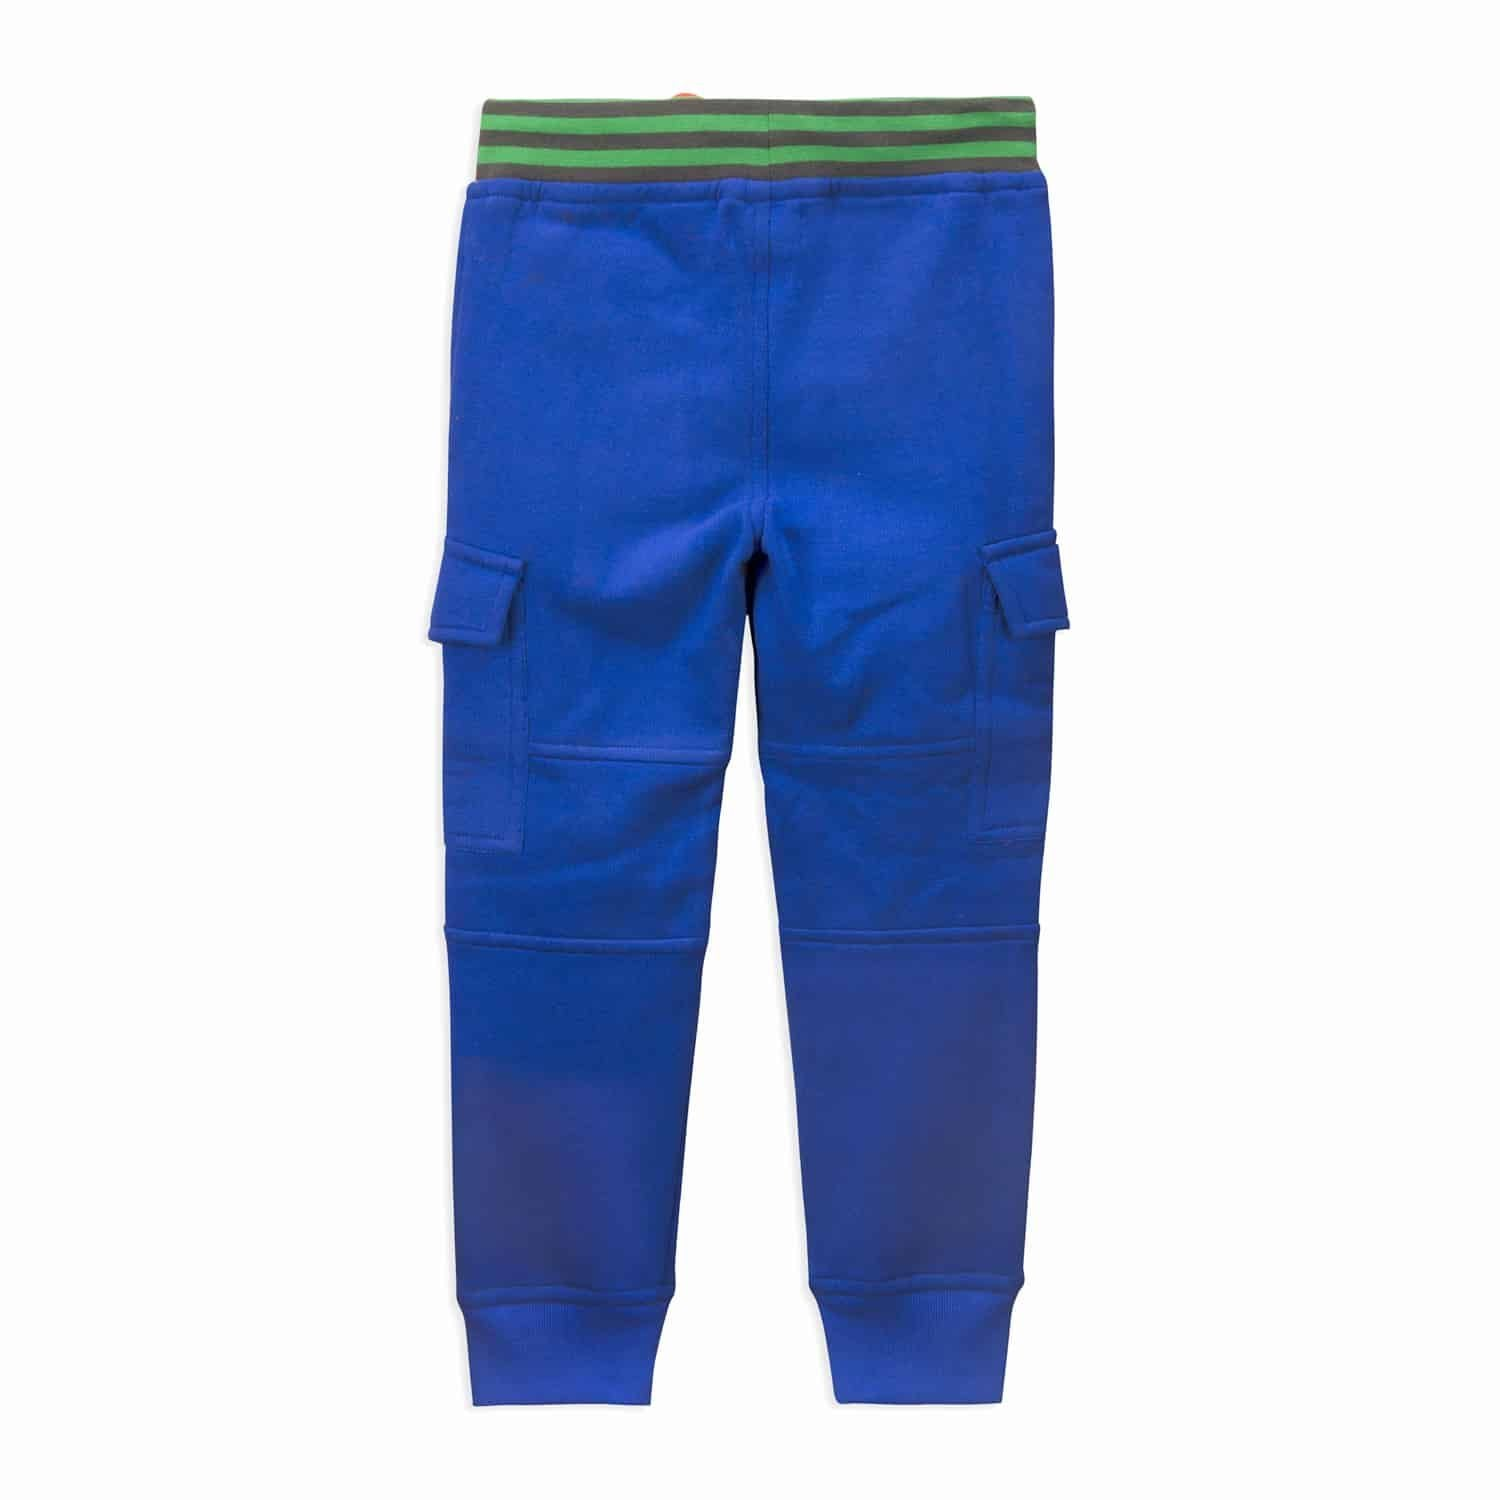 Millenium Joggers for kids